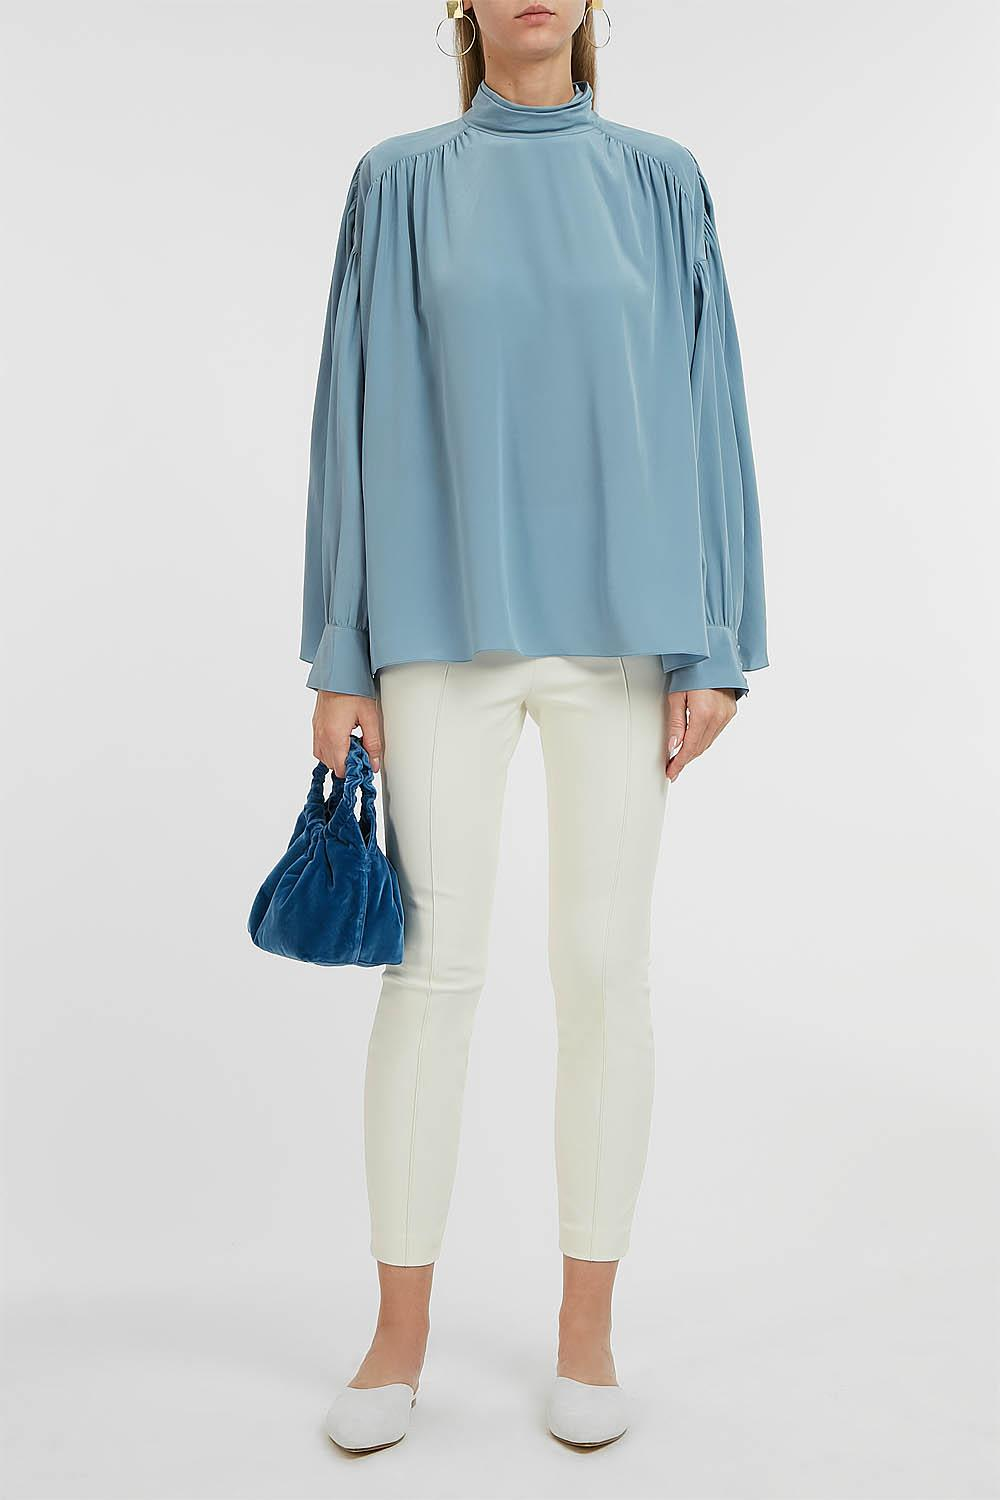 a7fbd9198aa0b Lyst - The Row Losaline Silk Blouse in Blue